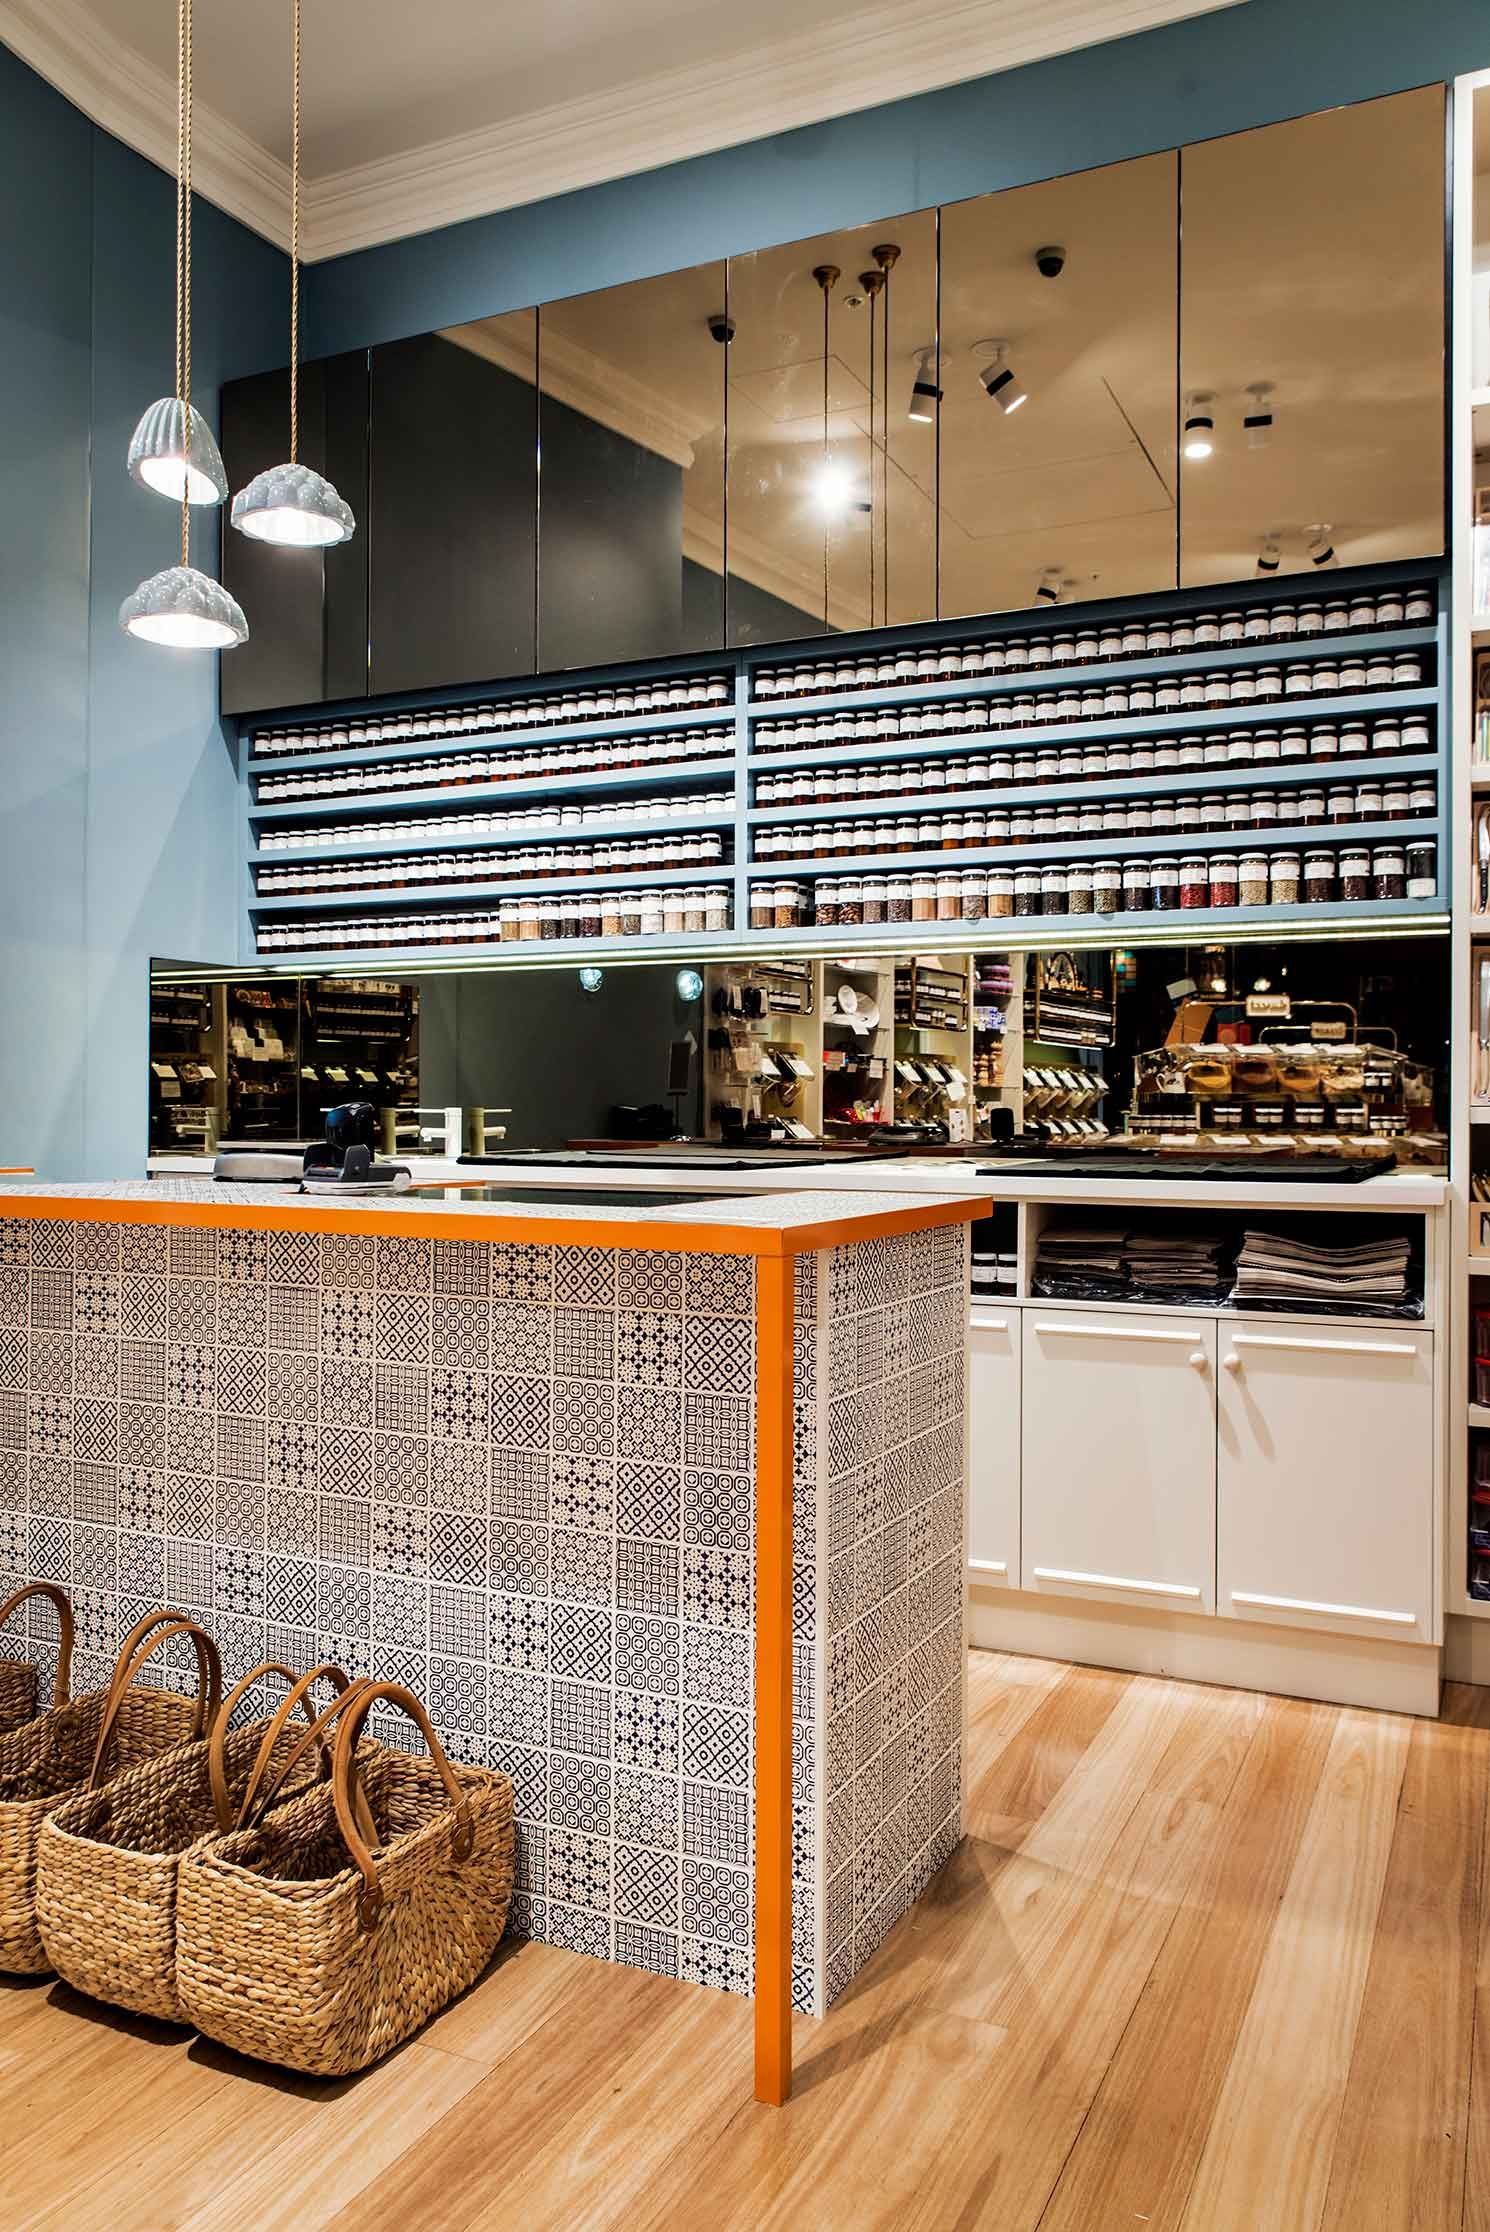 Gewurzhaus Merchants Stores by Doherty Design Studio. #counter #tiles